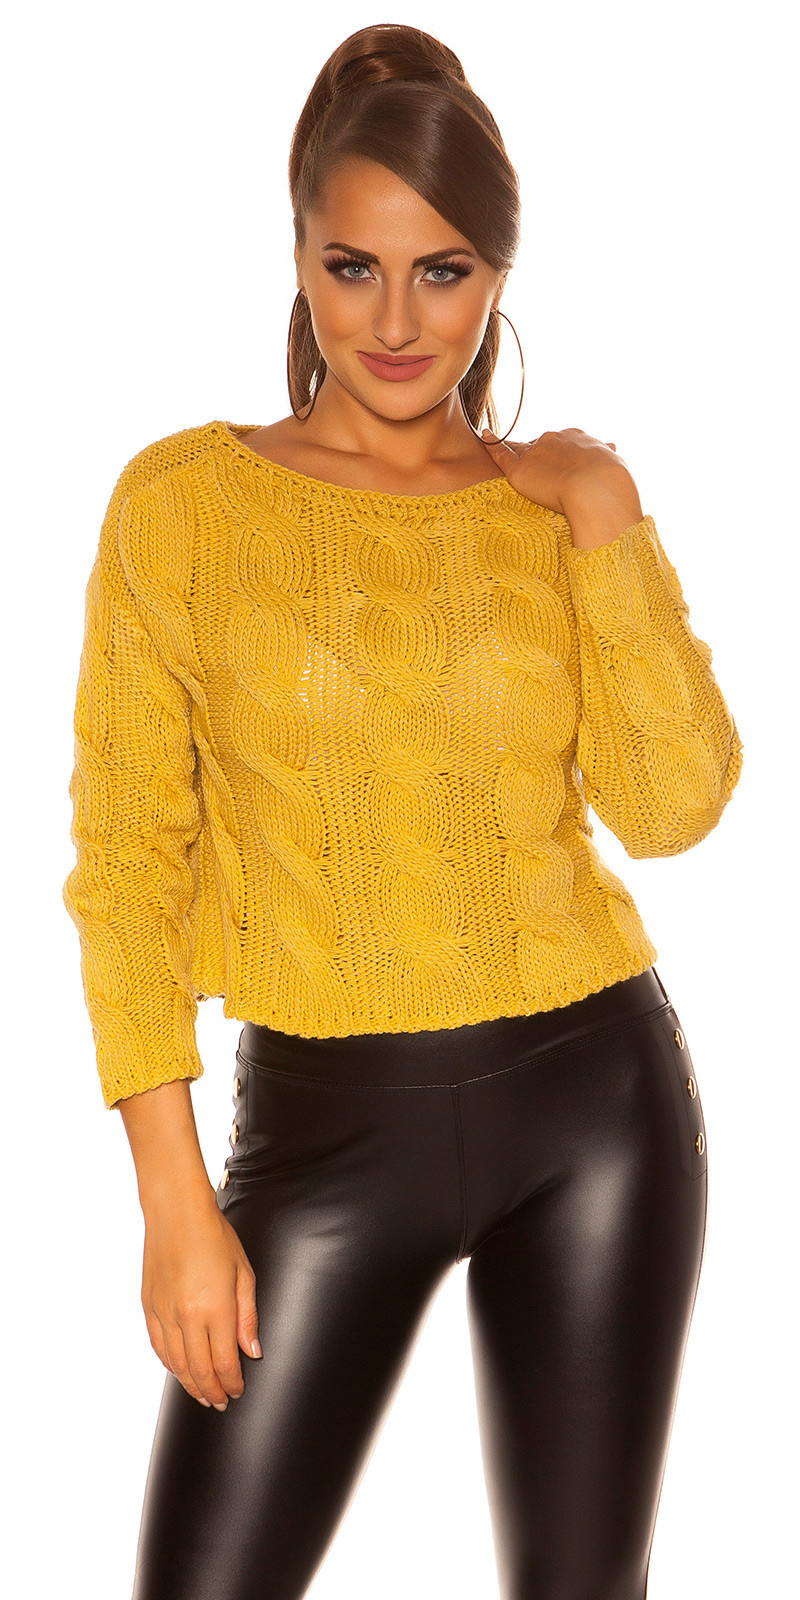 Trendy crop plait patroon sweater-trui mosterdgeel